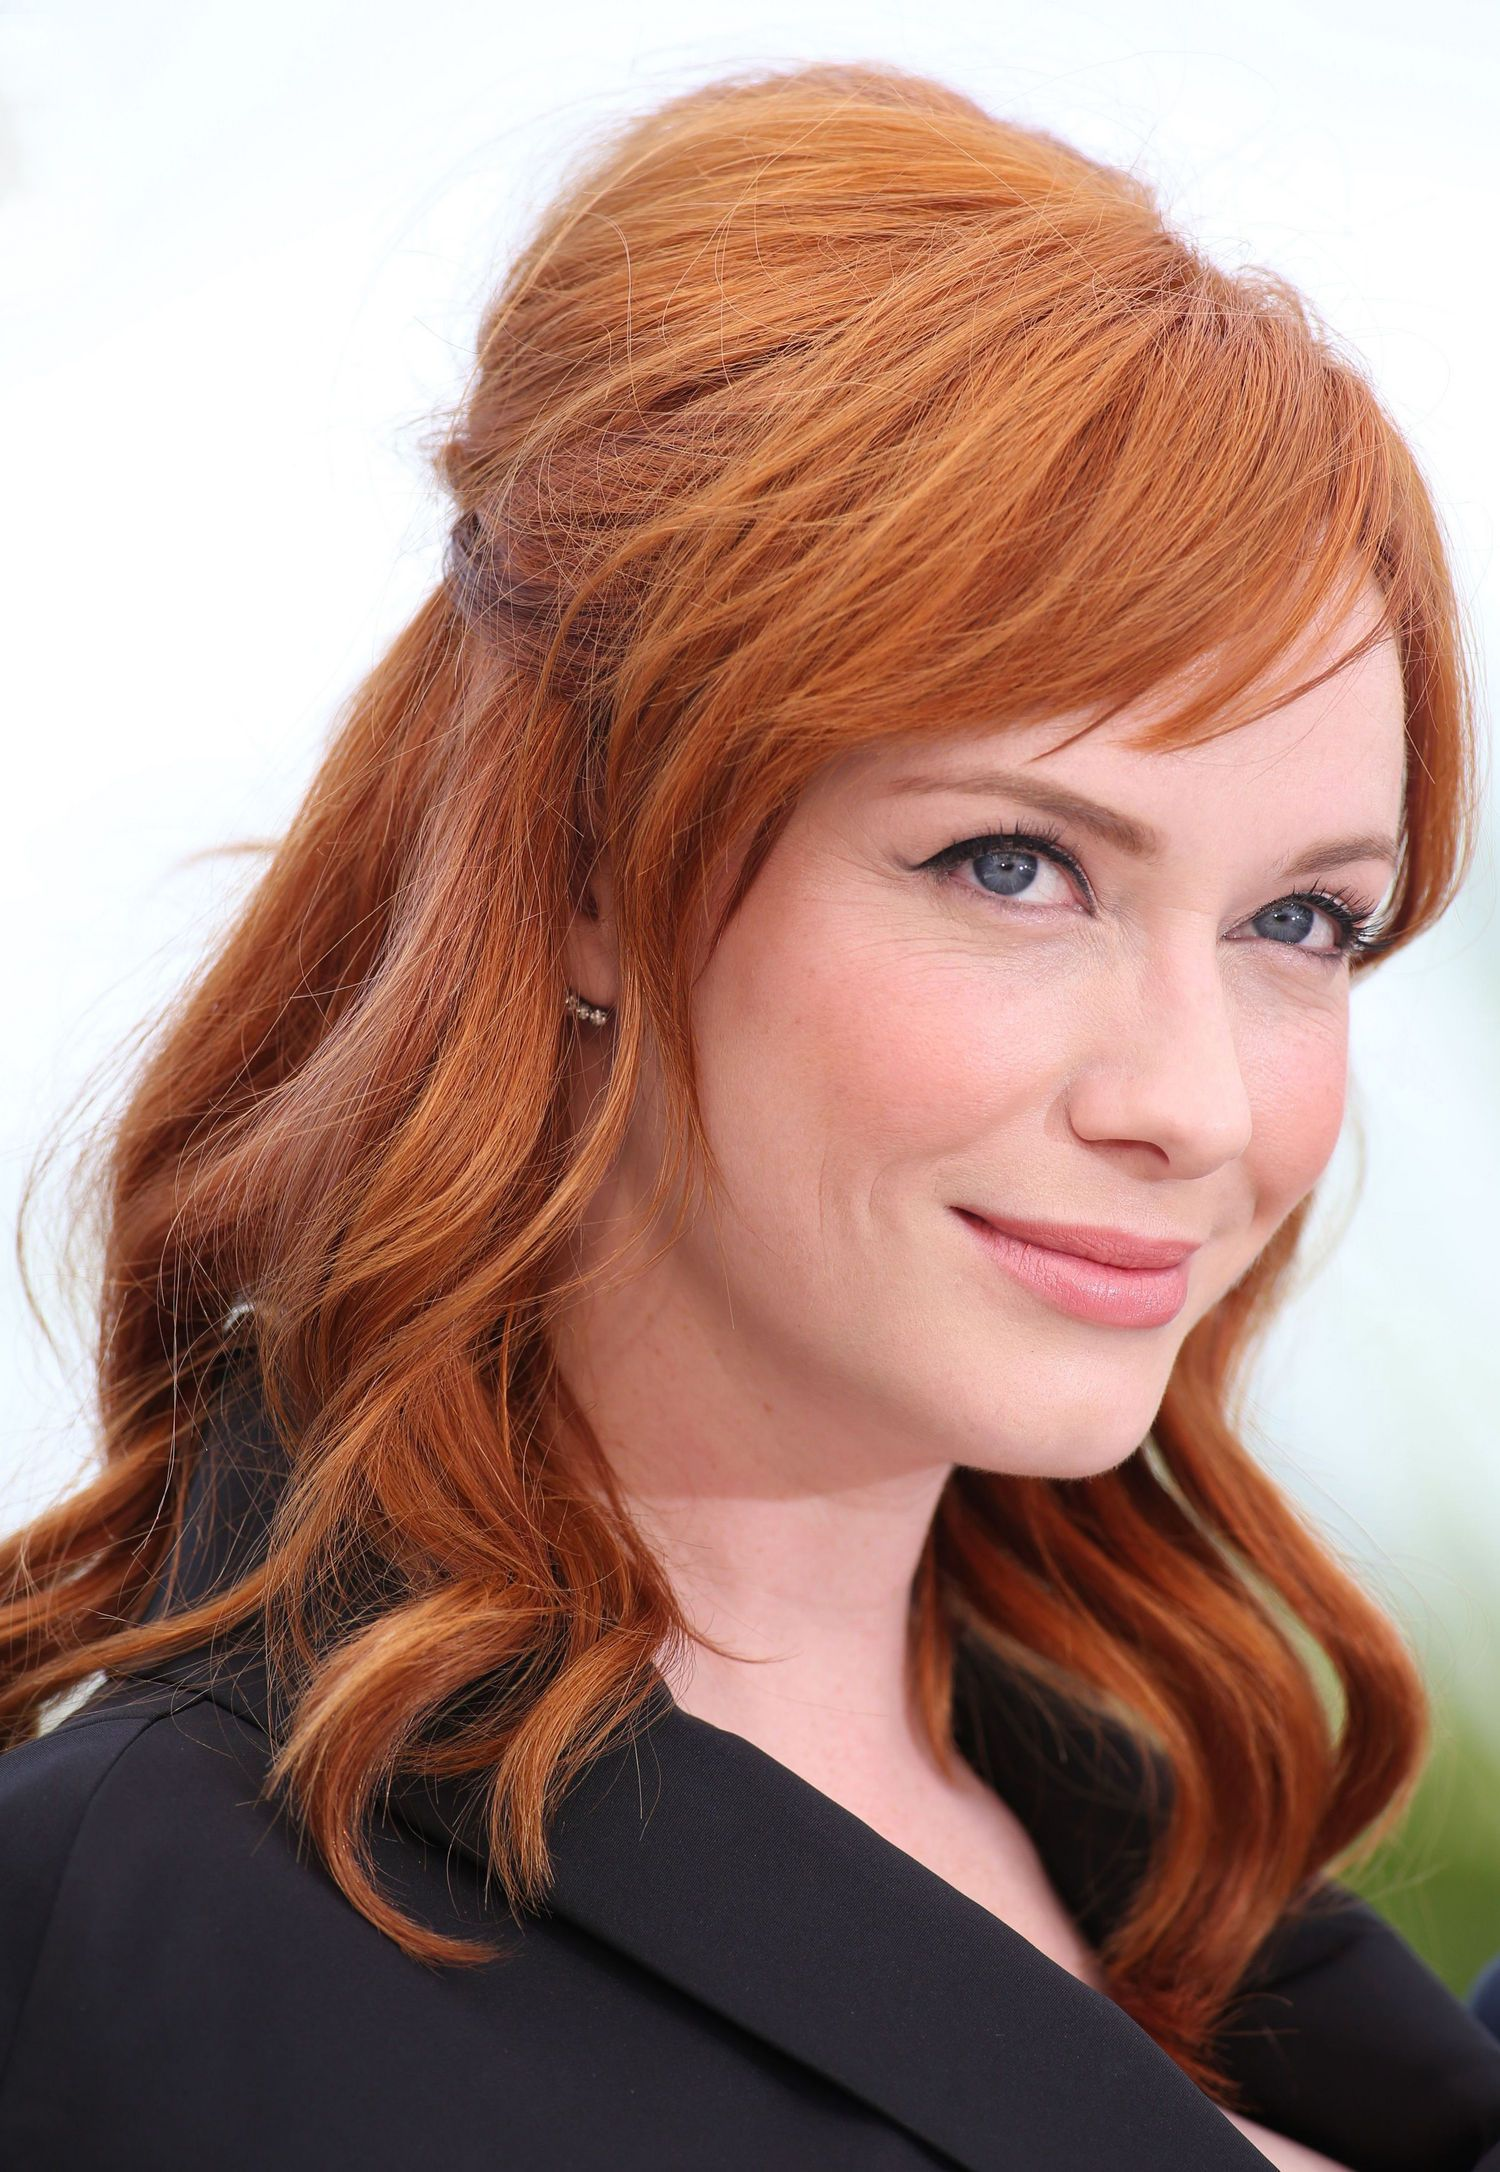 Find Out the Box of Red Hair Dye Christina Hendricks Uses Sheus Now